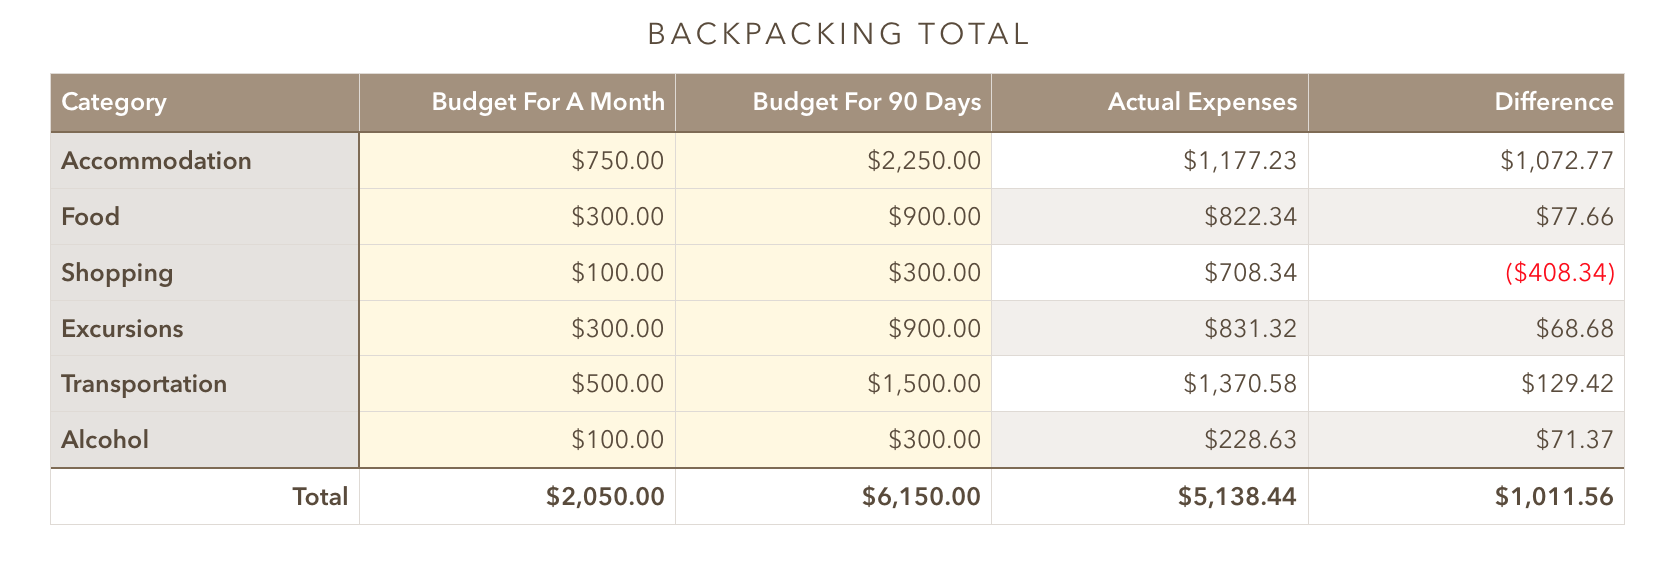 Backpacking Southeast Asia: Cost for 3 months